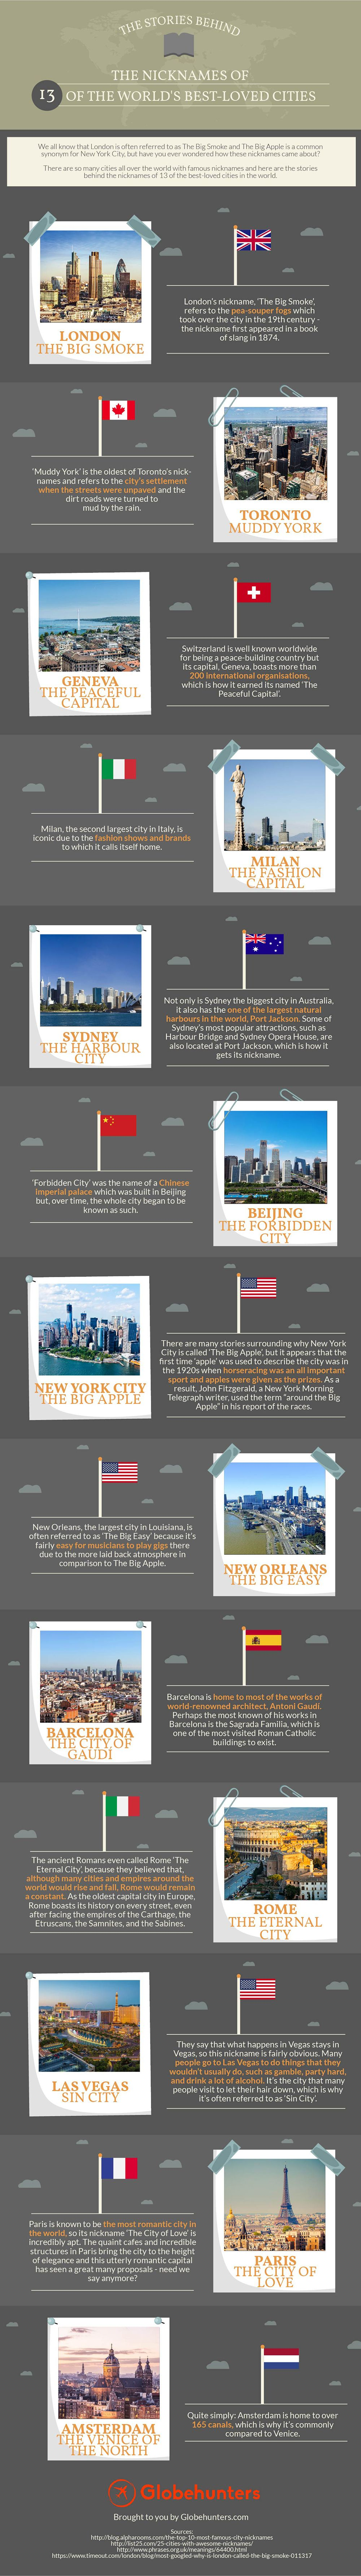 the stories behind 13 of the most famous city nicknames. Black Bedroom Furniture Sets. Home Design Ideas